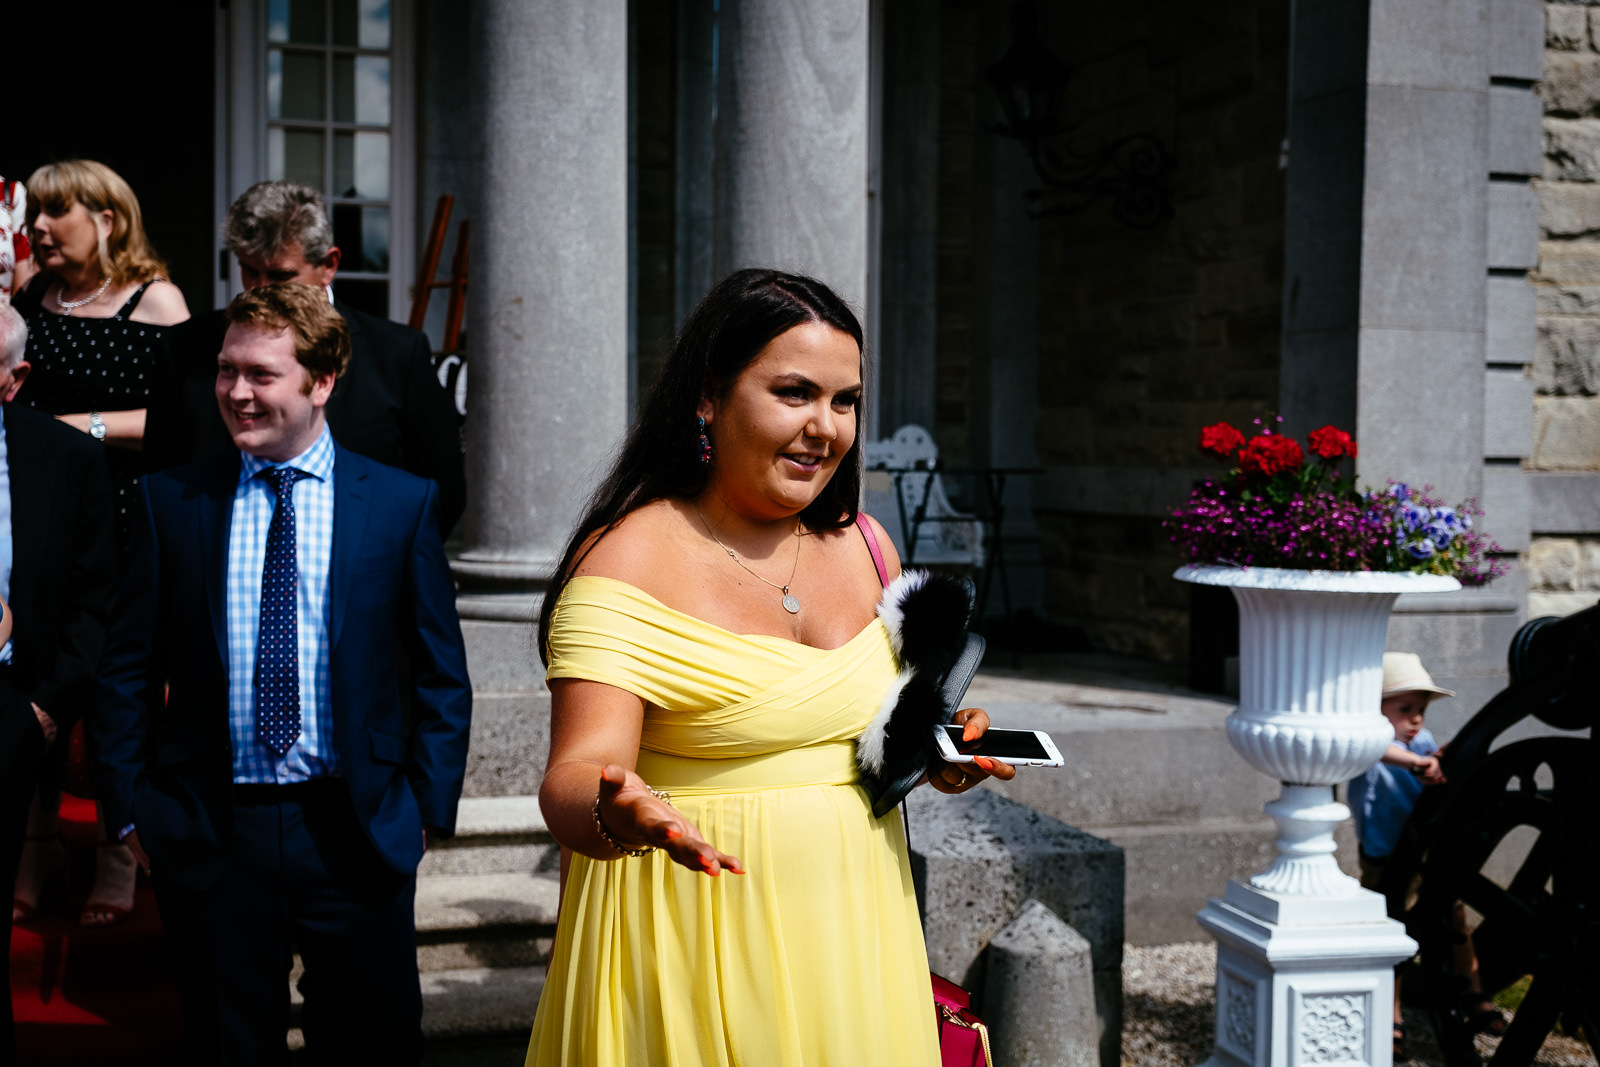 palmerstown estate wedding photographer kildare 0715